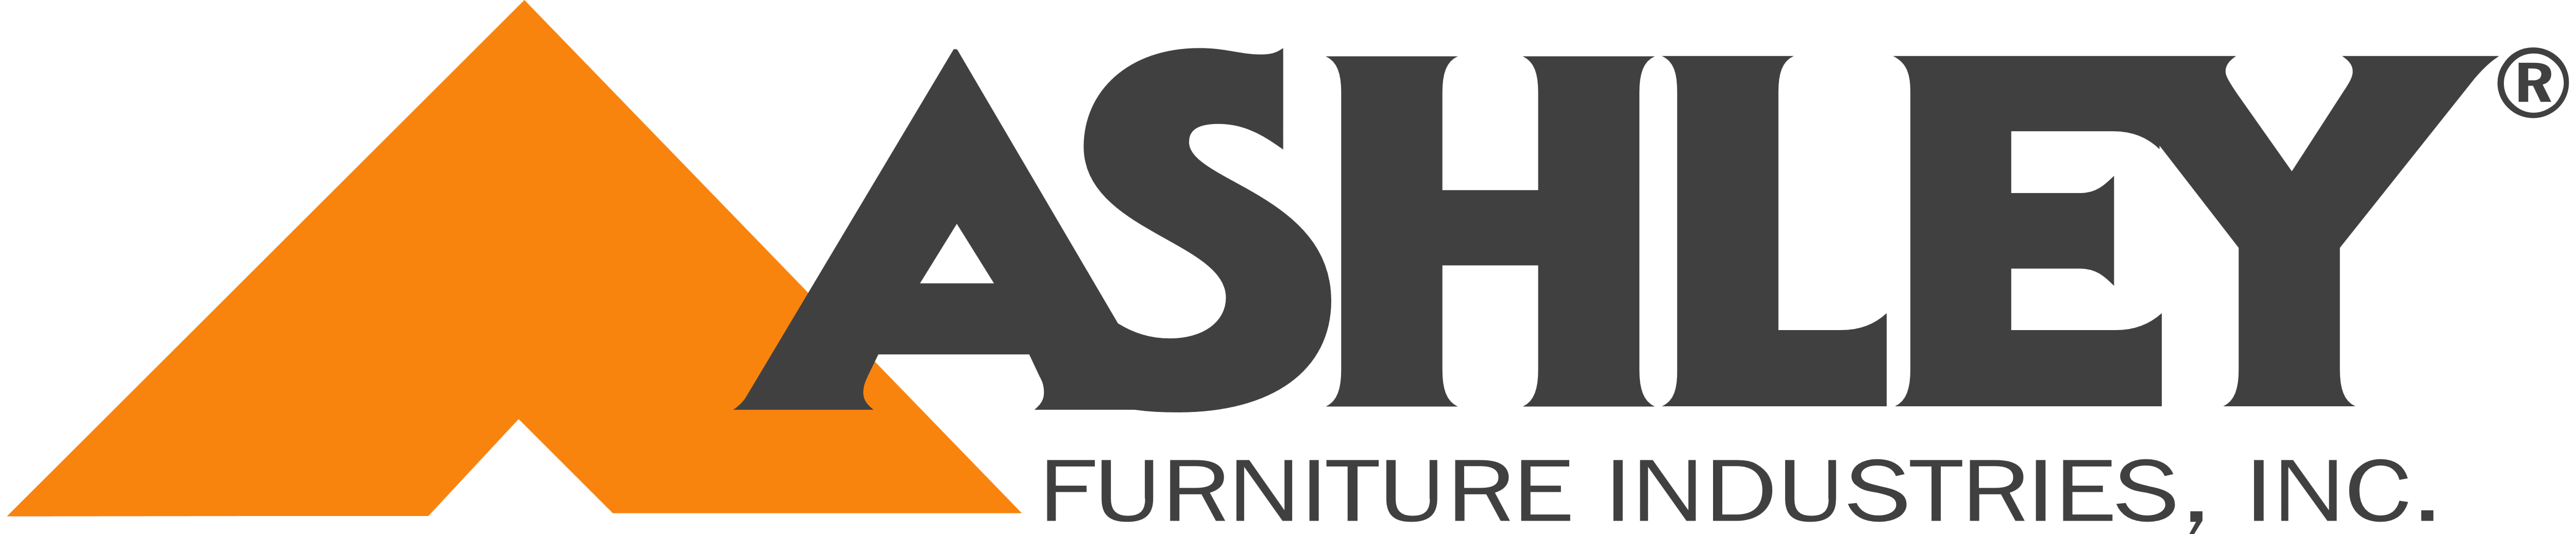 Ashley Furniture logo, logotype - Ashley Furniture Homestore Logo Vector PNG - Ashley Furniture Logo PNG